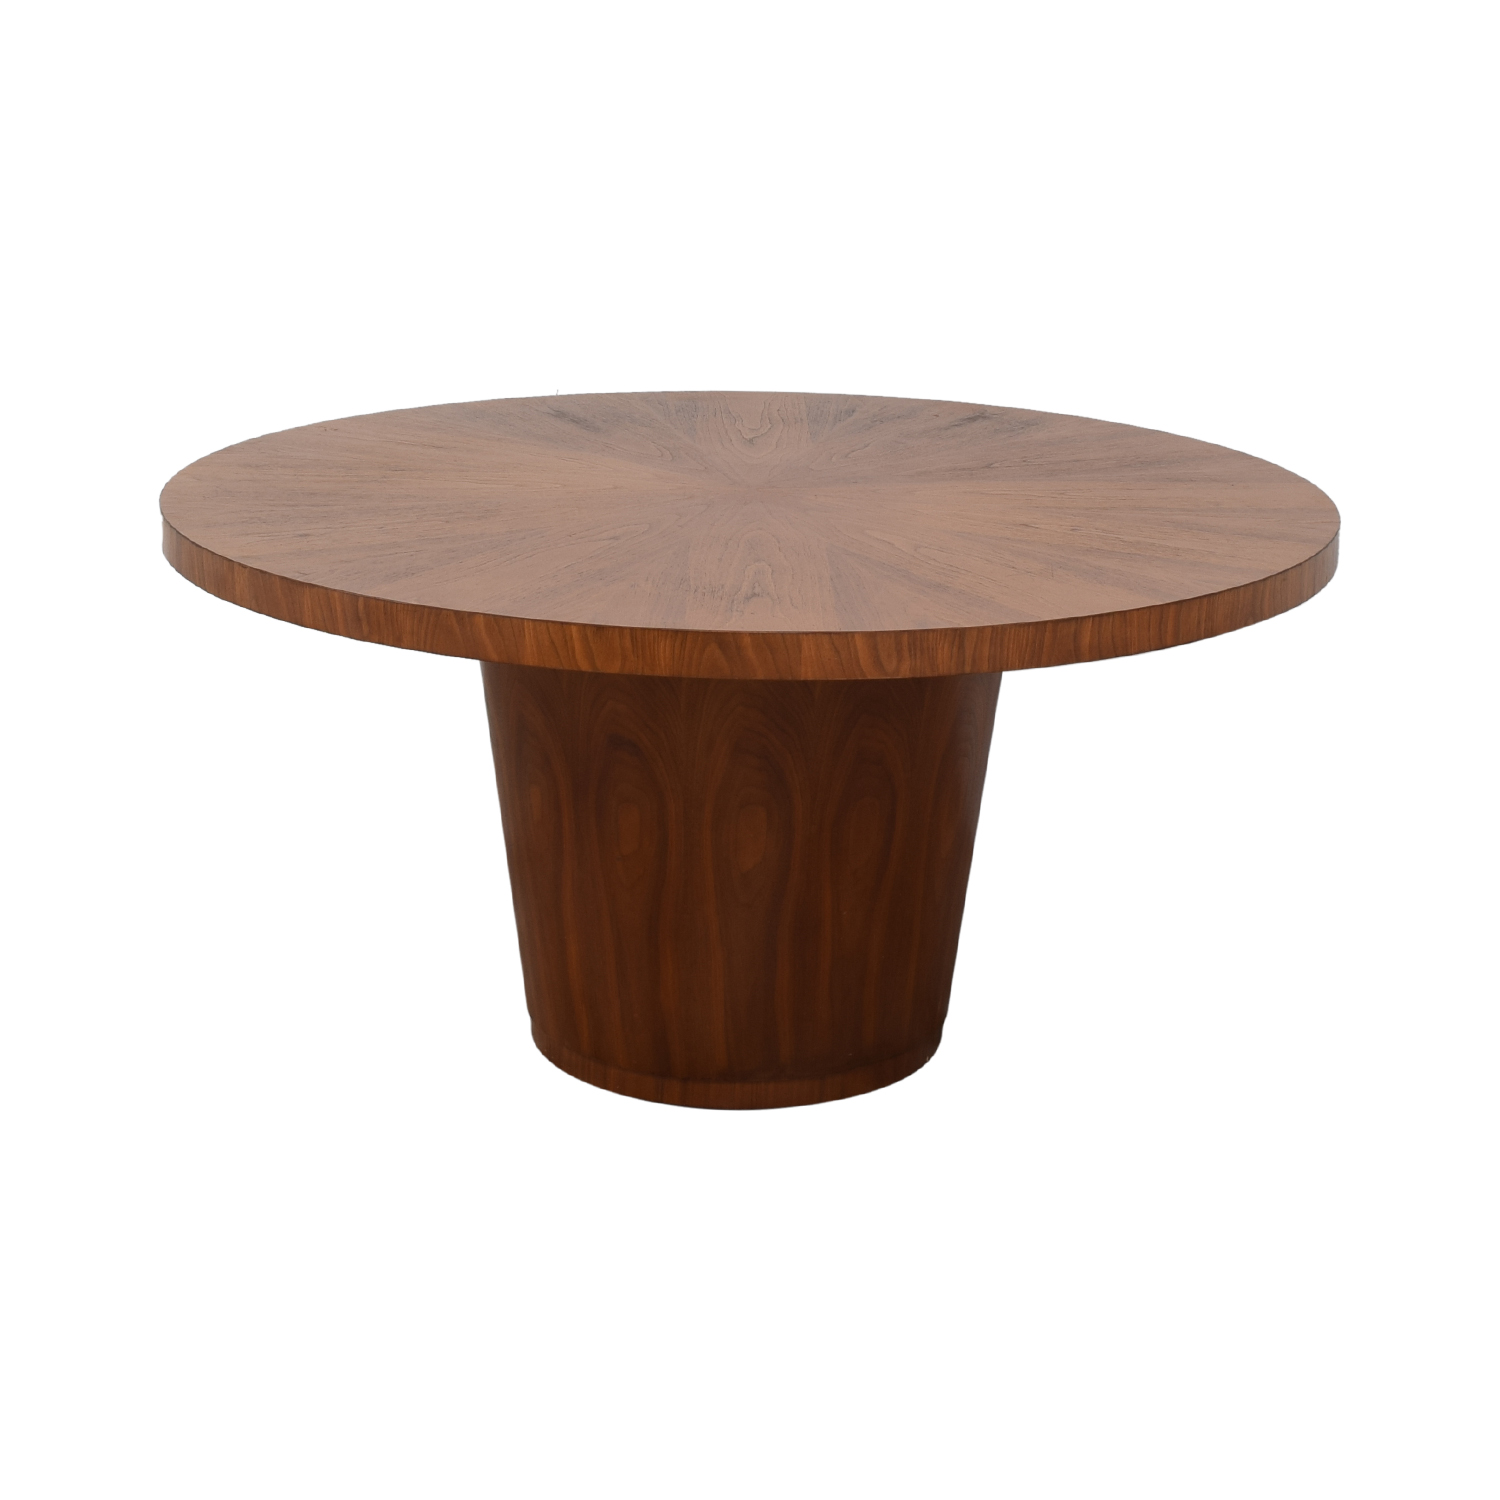 Crate & Barrel Crate & Barrel Round Dining Table on sale